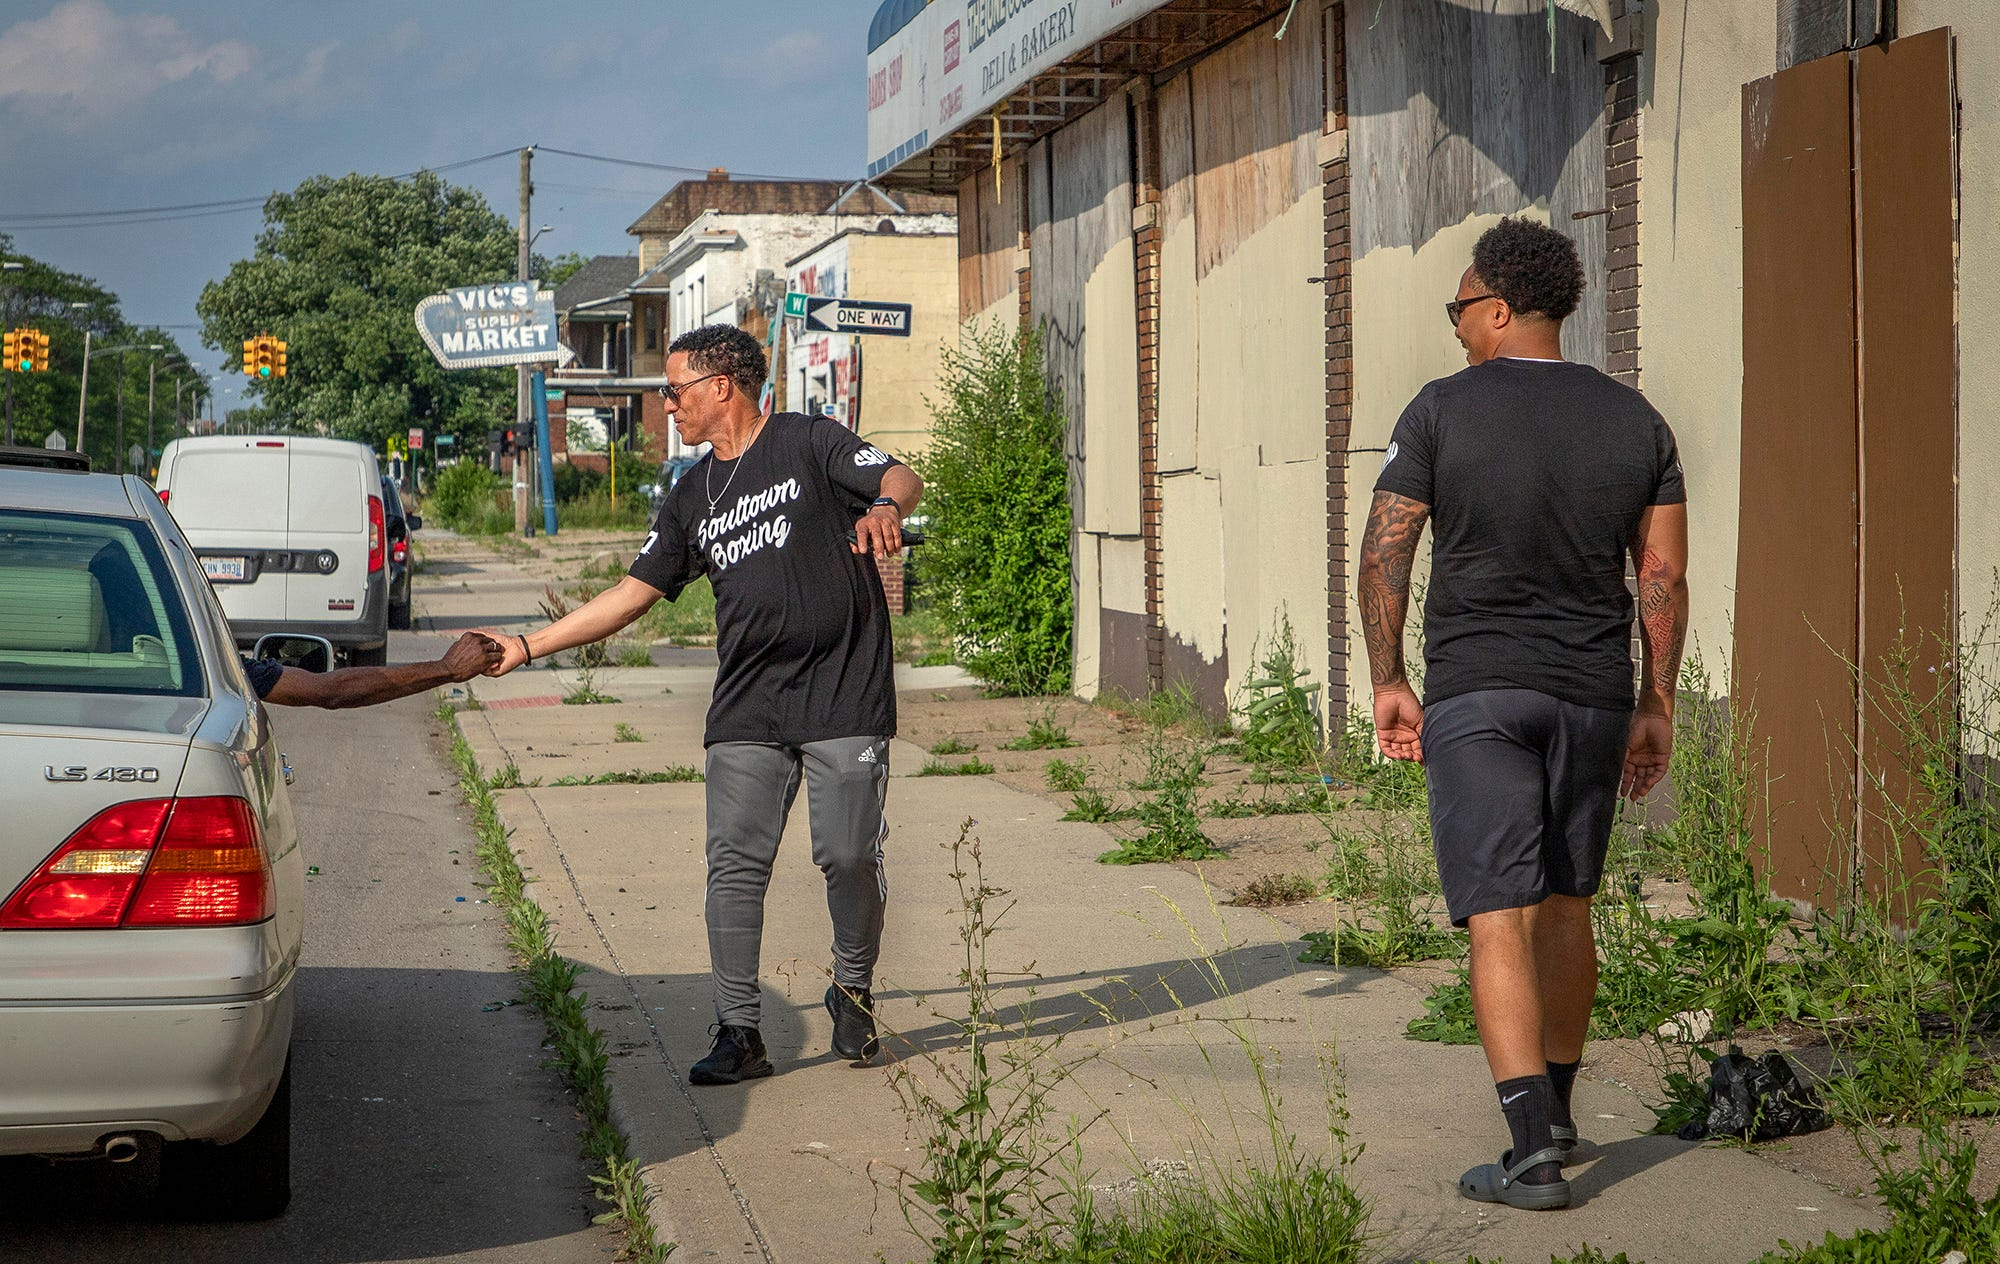 """David Woods Jr., 33, right, watches his father David 'Bing"""" Shumate, 58, reunite with a friend from the neighborhood in front of the block of businesses on Tireman Ave. where they both shared business space in Detroit on June 18, 2021. Woods' dream started almost 25 years ago when he decided to start Enjoy Detroit's father company, SBOY (Successful Brothers of Youth) Printing, inside of a dollar store owned by his father."""